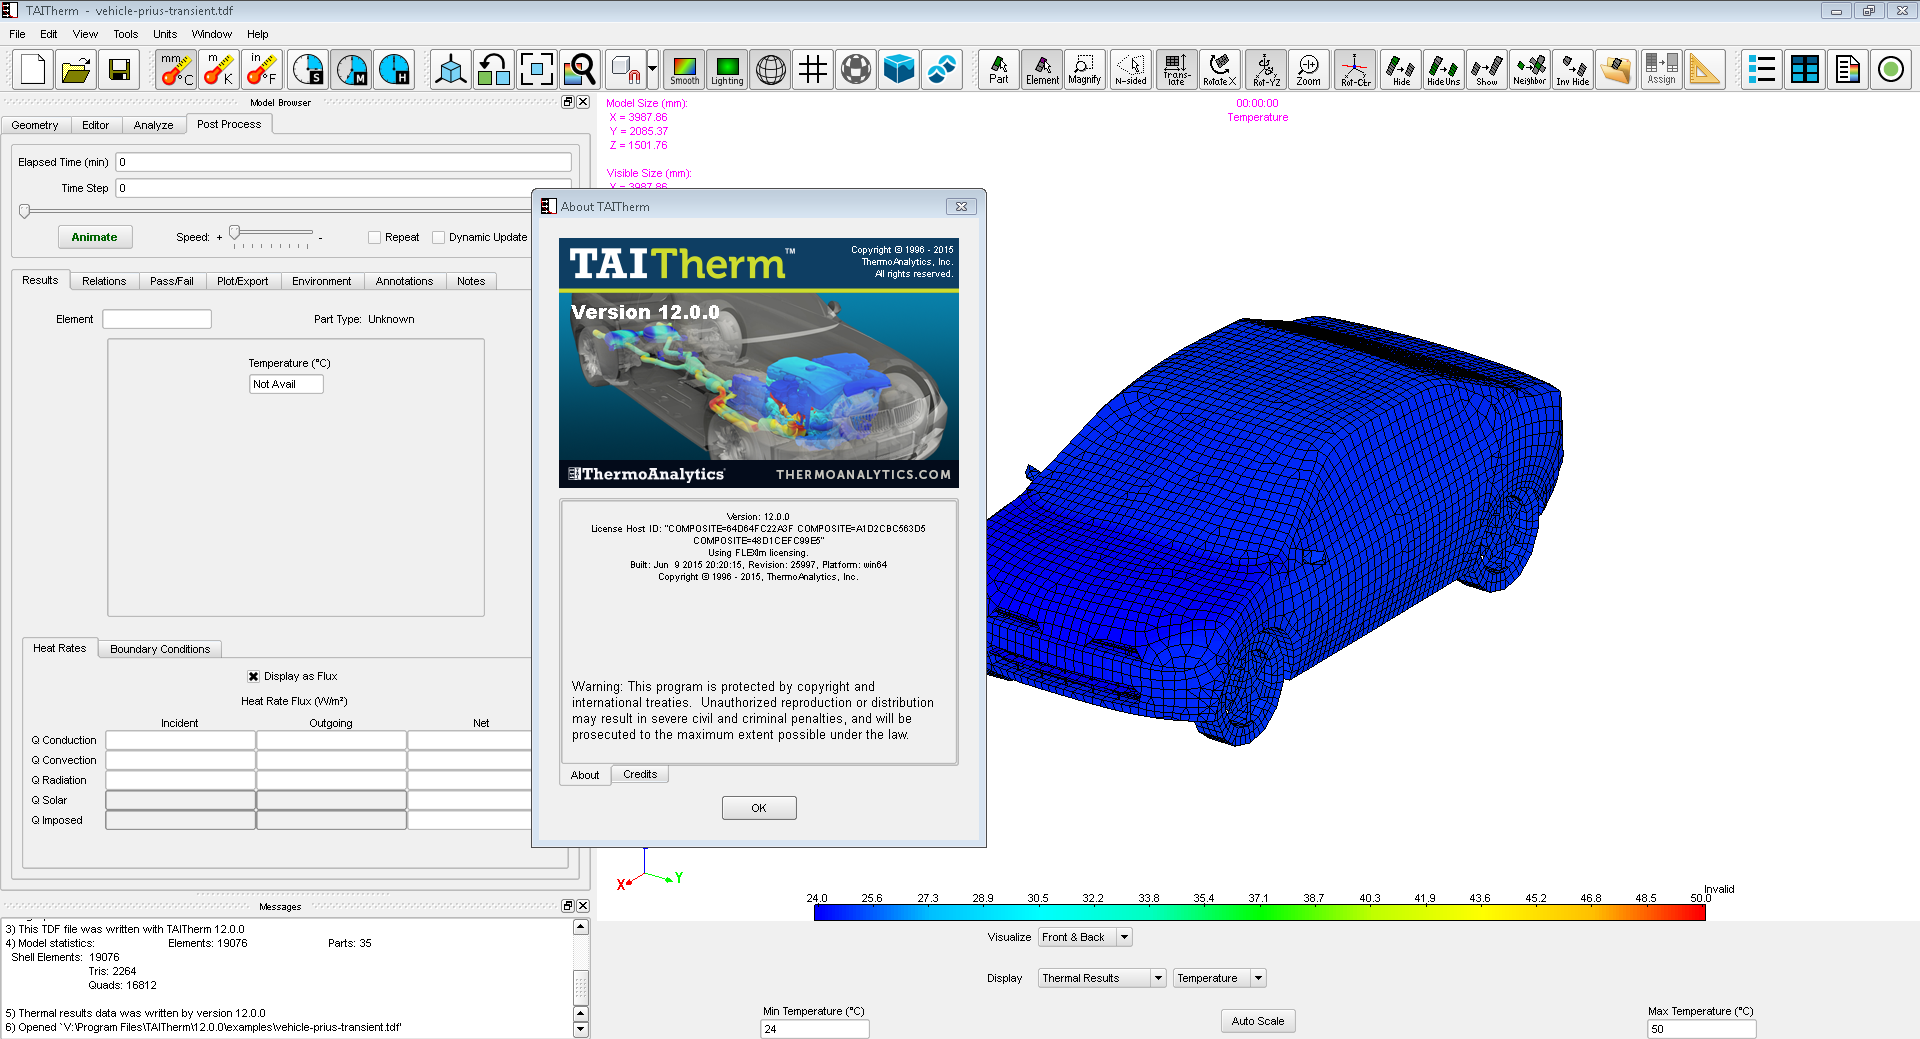 Working with Taitherm (ex-Radtherm) 12.0.0 full license